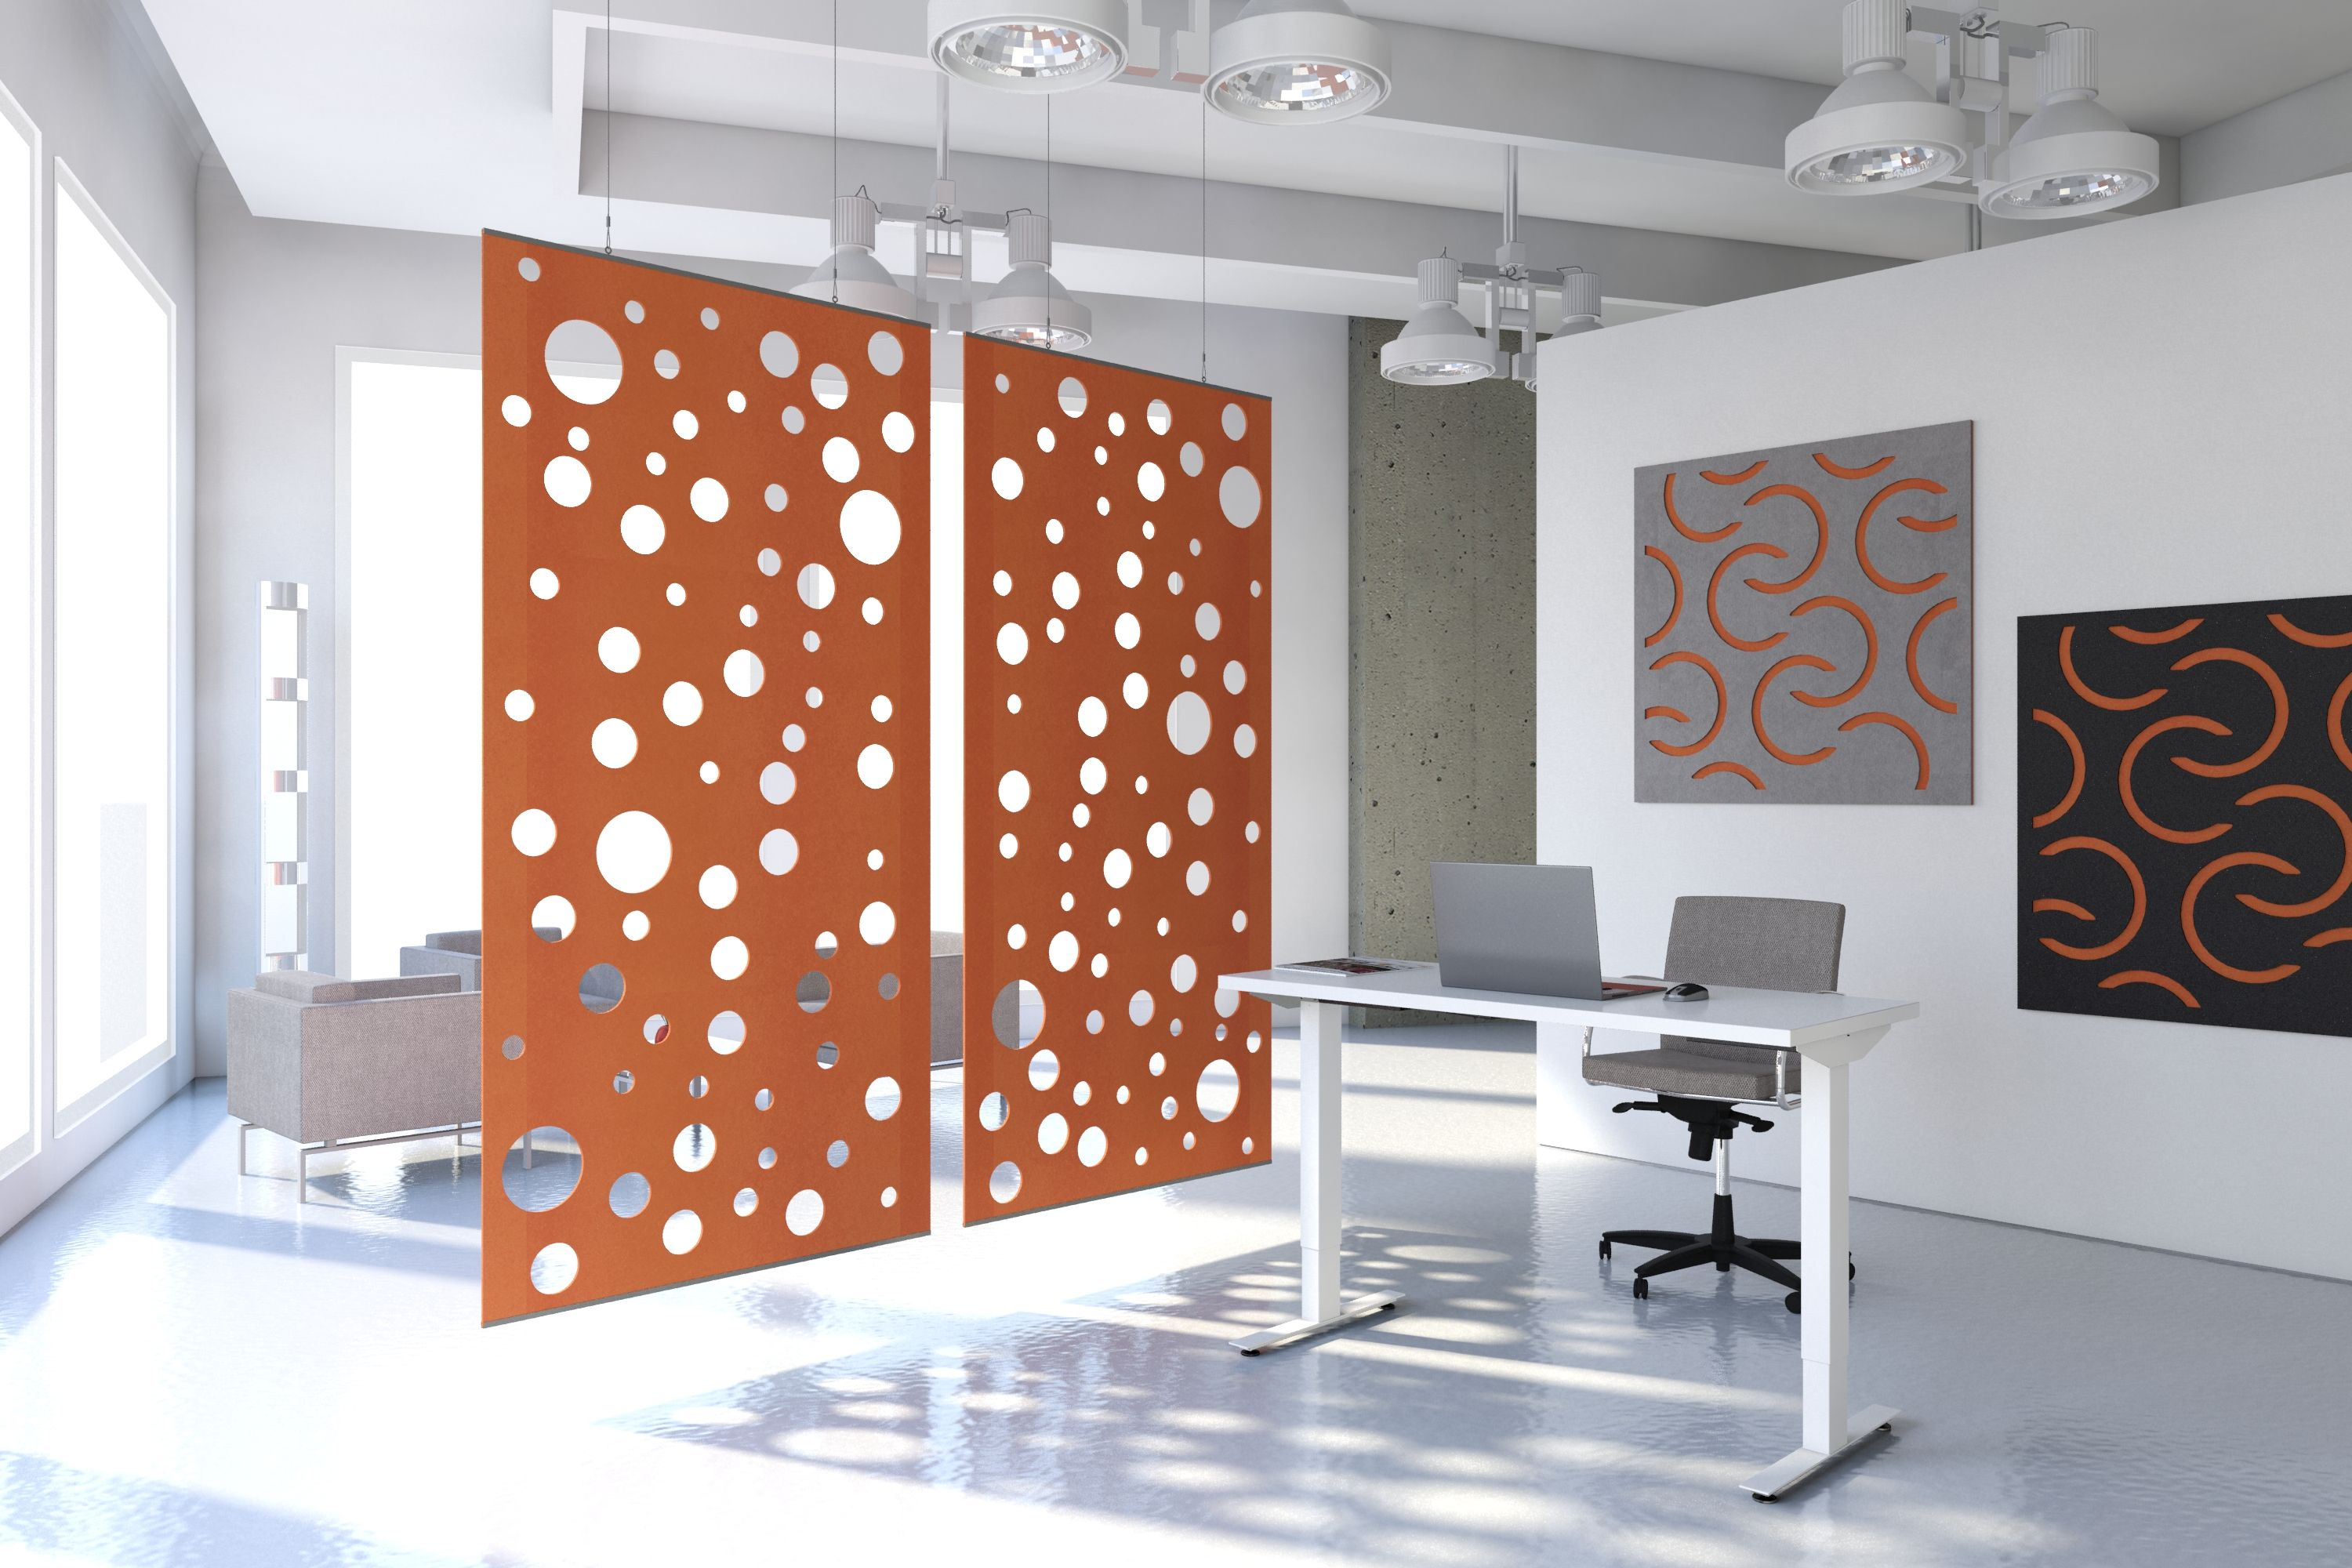 Try Our New Sound Absorbing Echodeco Panels To Help Improve Sound